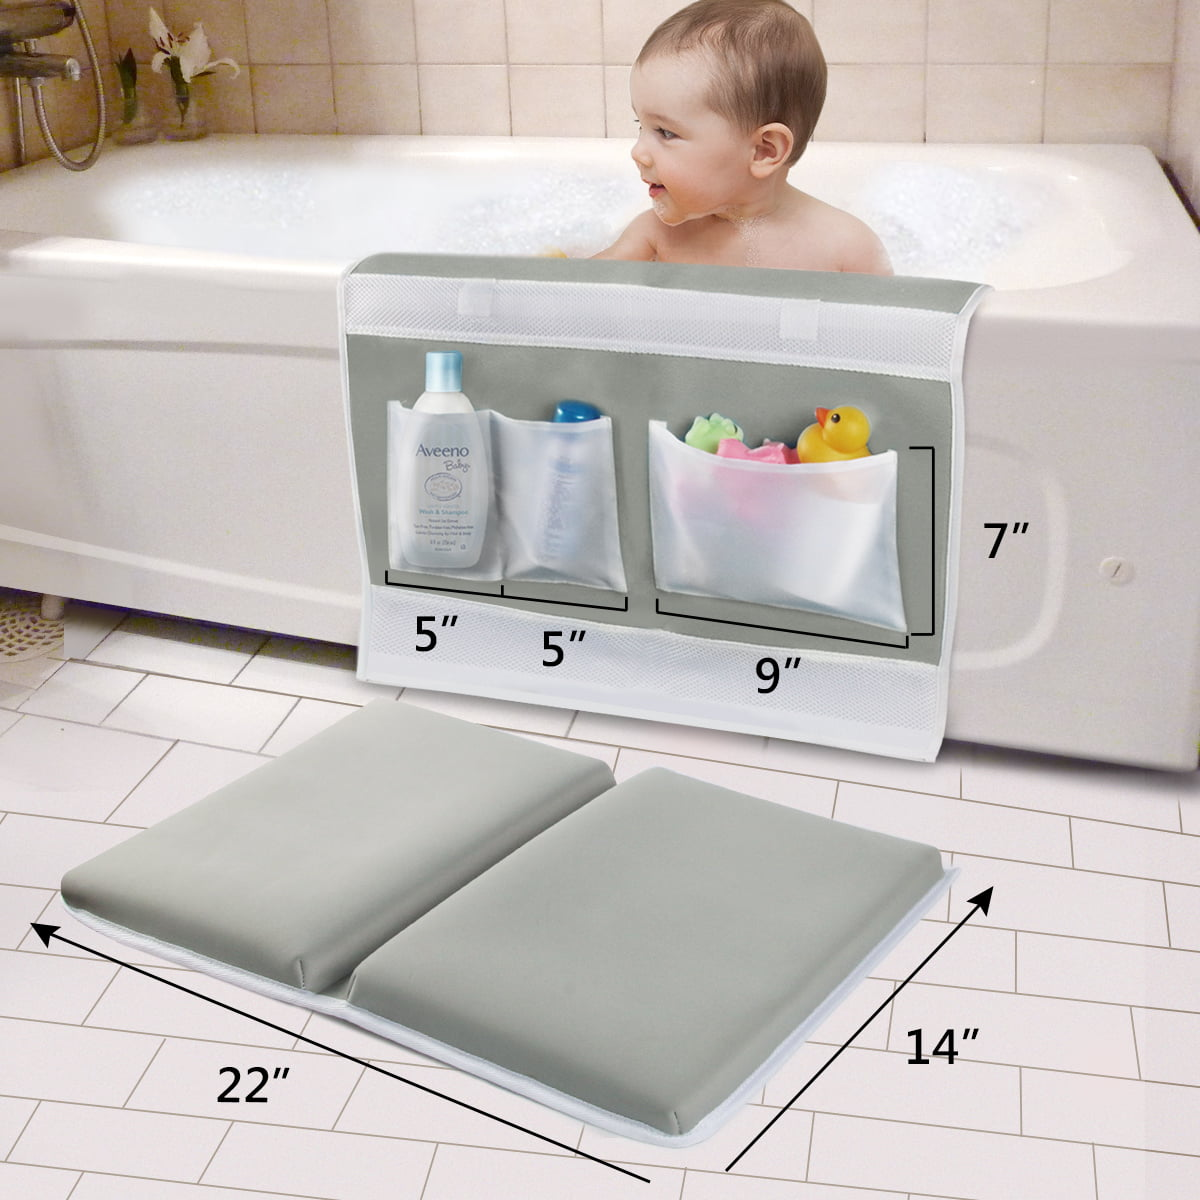 Baby Essentials and Baby Items Bath Kneeler and Elbow Rest 1.75 inches Thick Kneeling pad for Comfort Bath mat for Baby Bath tub Bathing Baby Stuff Baby Shower Gifts Baby Gifts for Boys and Girls